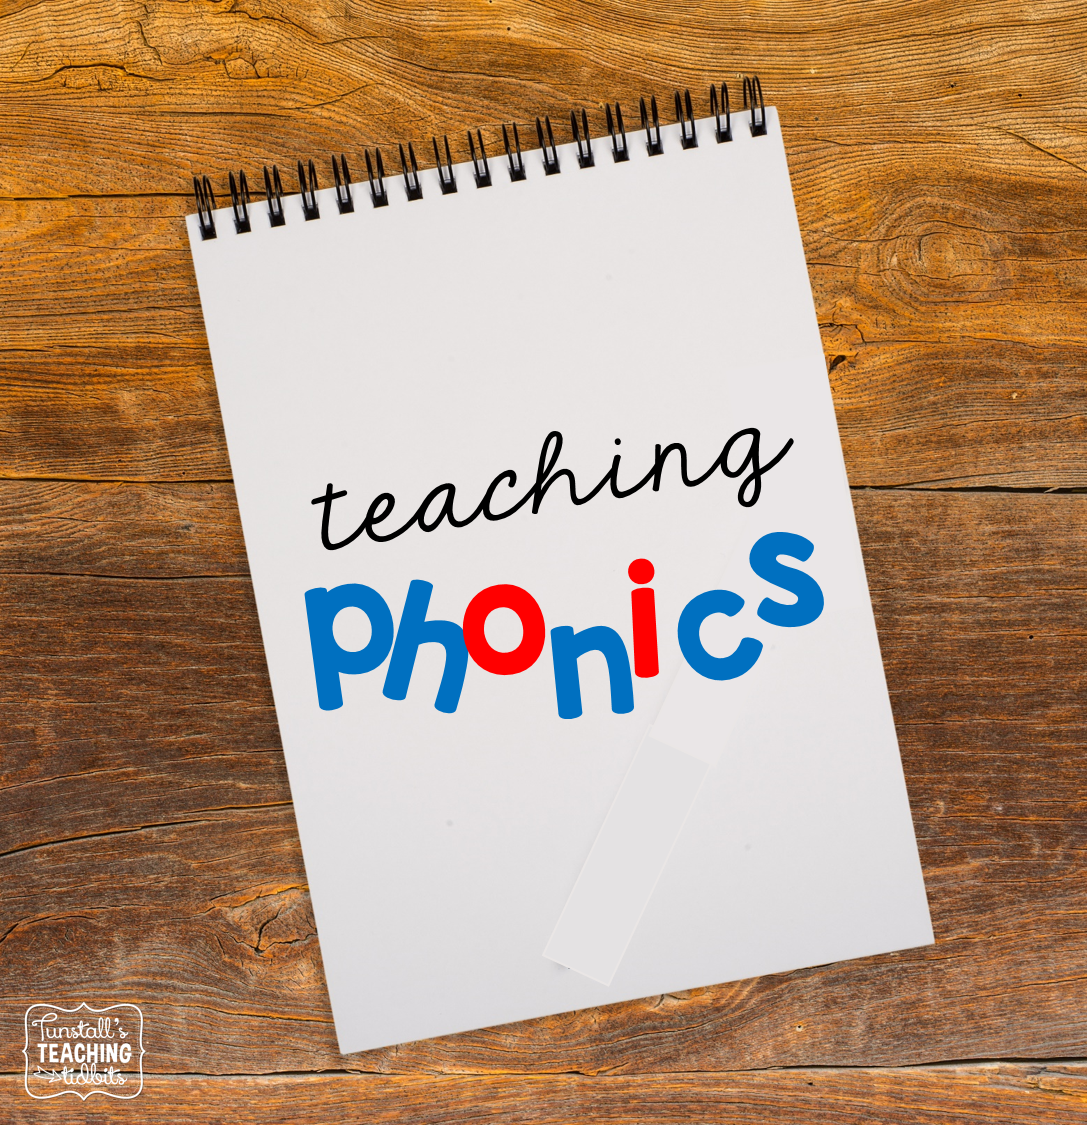 hight resolution of Lesson Planning Ideas: Teaching Phonics - Tunstall's Teaching Tidbits